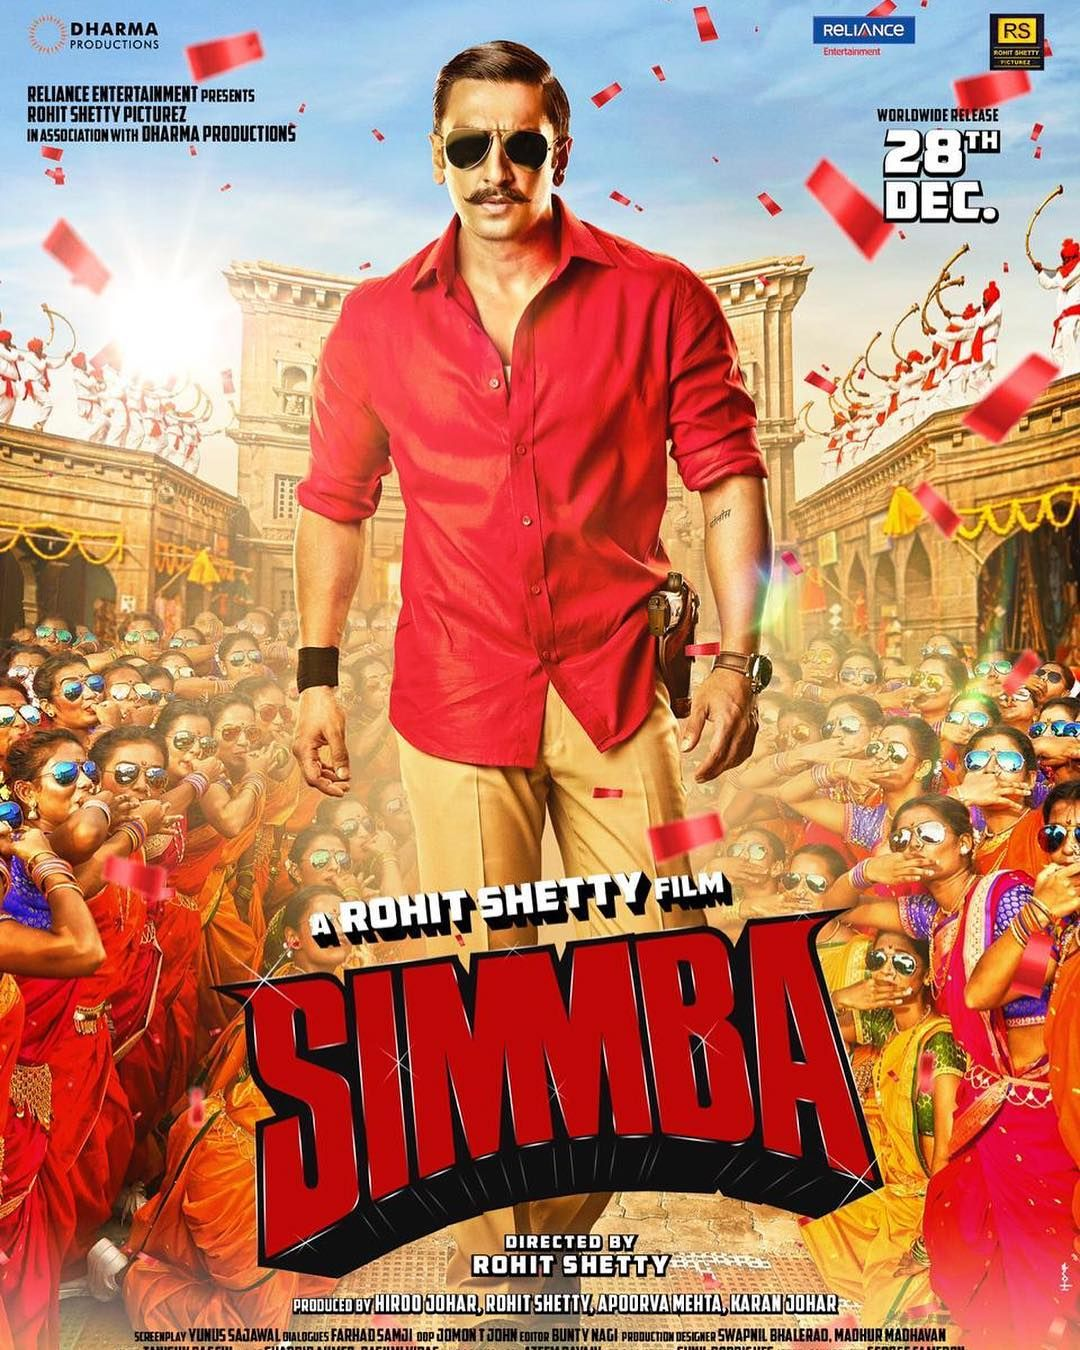 SIMMBA Download movies, Full movies download, Full movies